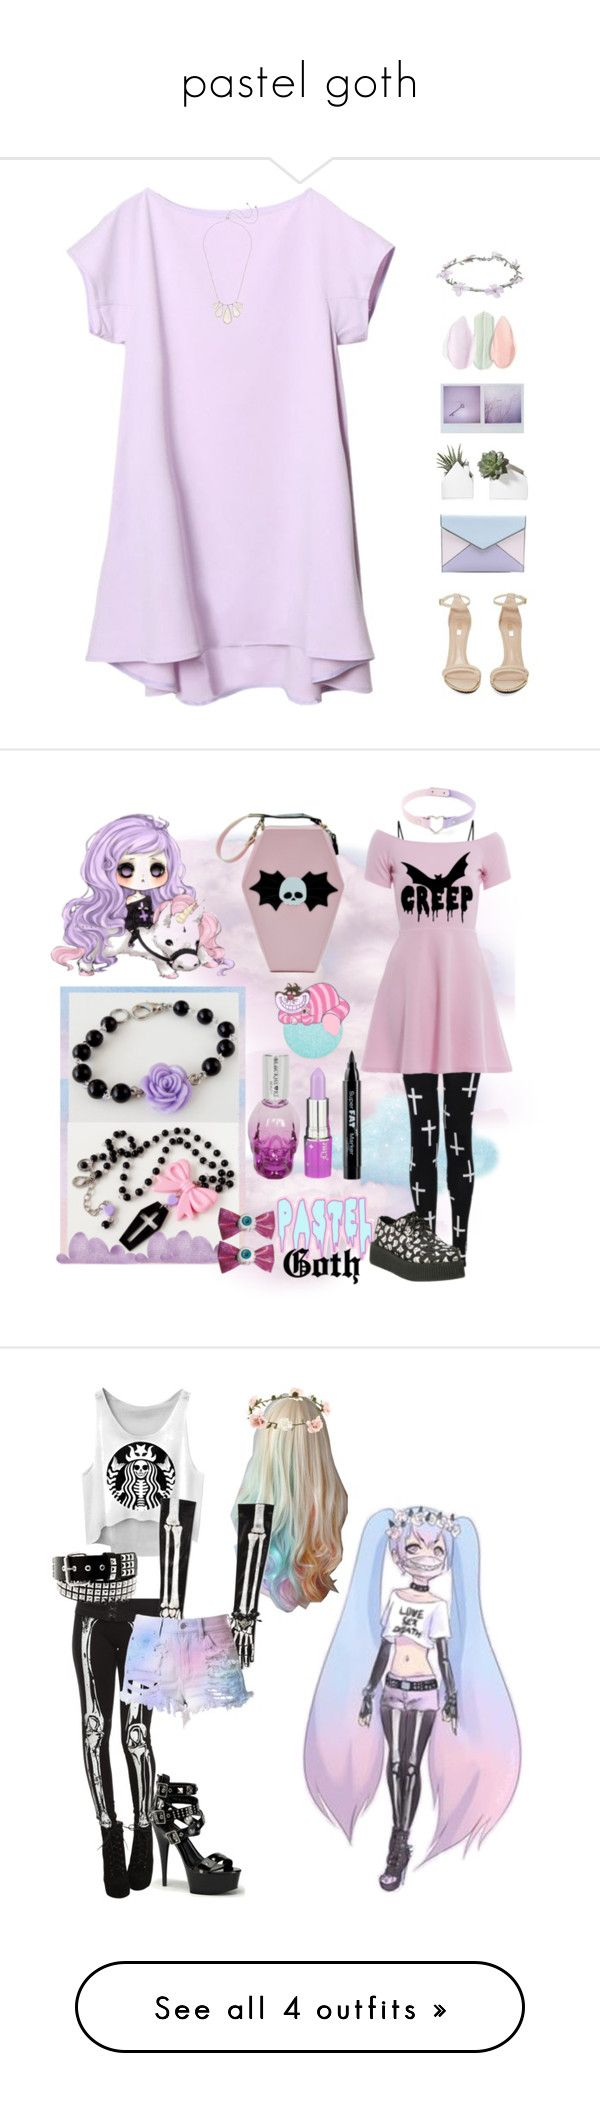 """""""pastel goth"""" by defective-boy ❤ liked on Polyvore featuring Jeffrey Campbell, Rebecca Minkoff, Kendra Scott, Wet Seal, AX Paris, Lime Crime, NYX, T.U.K., Kreepsville 666 and Grandin Road"""